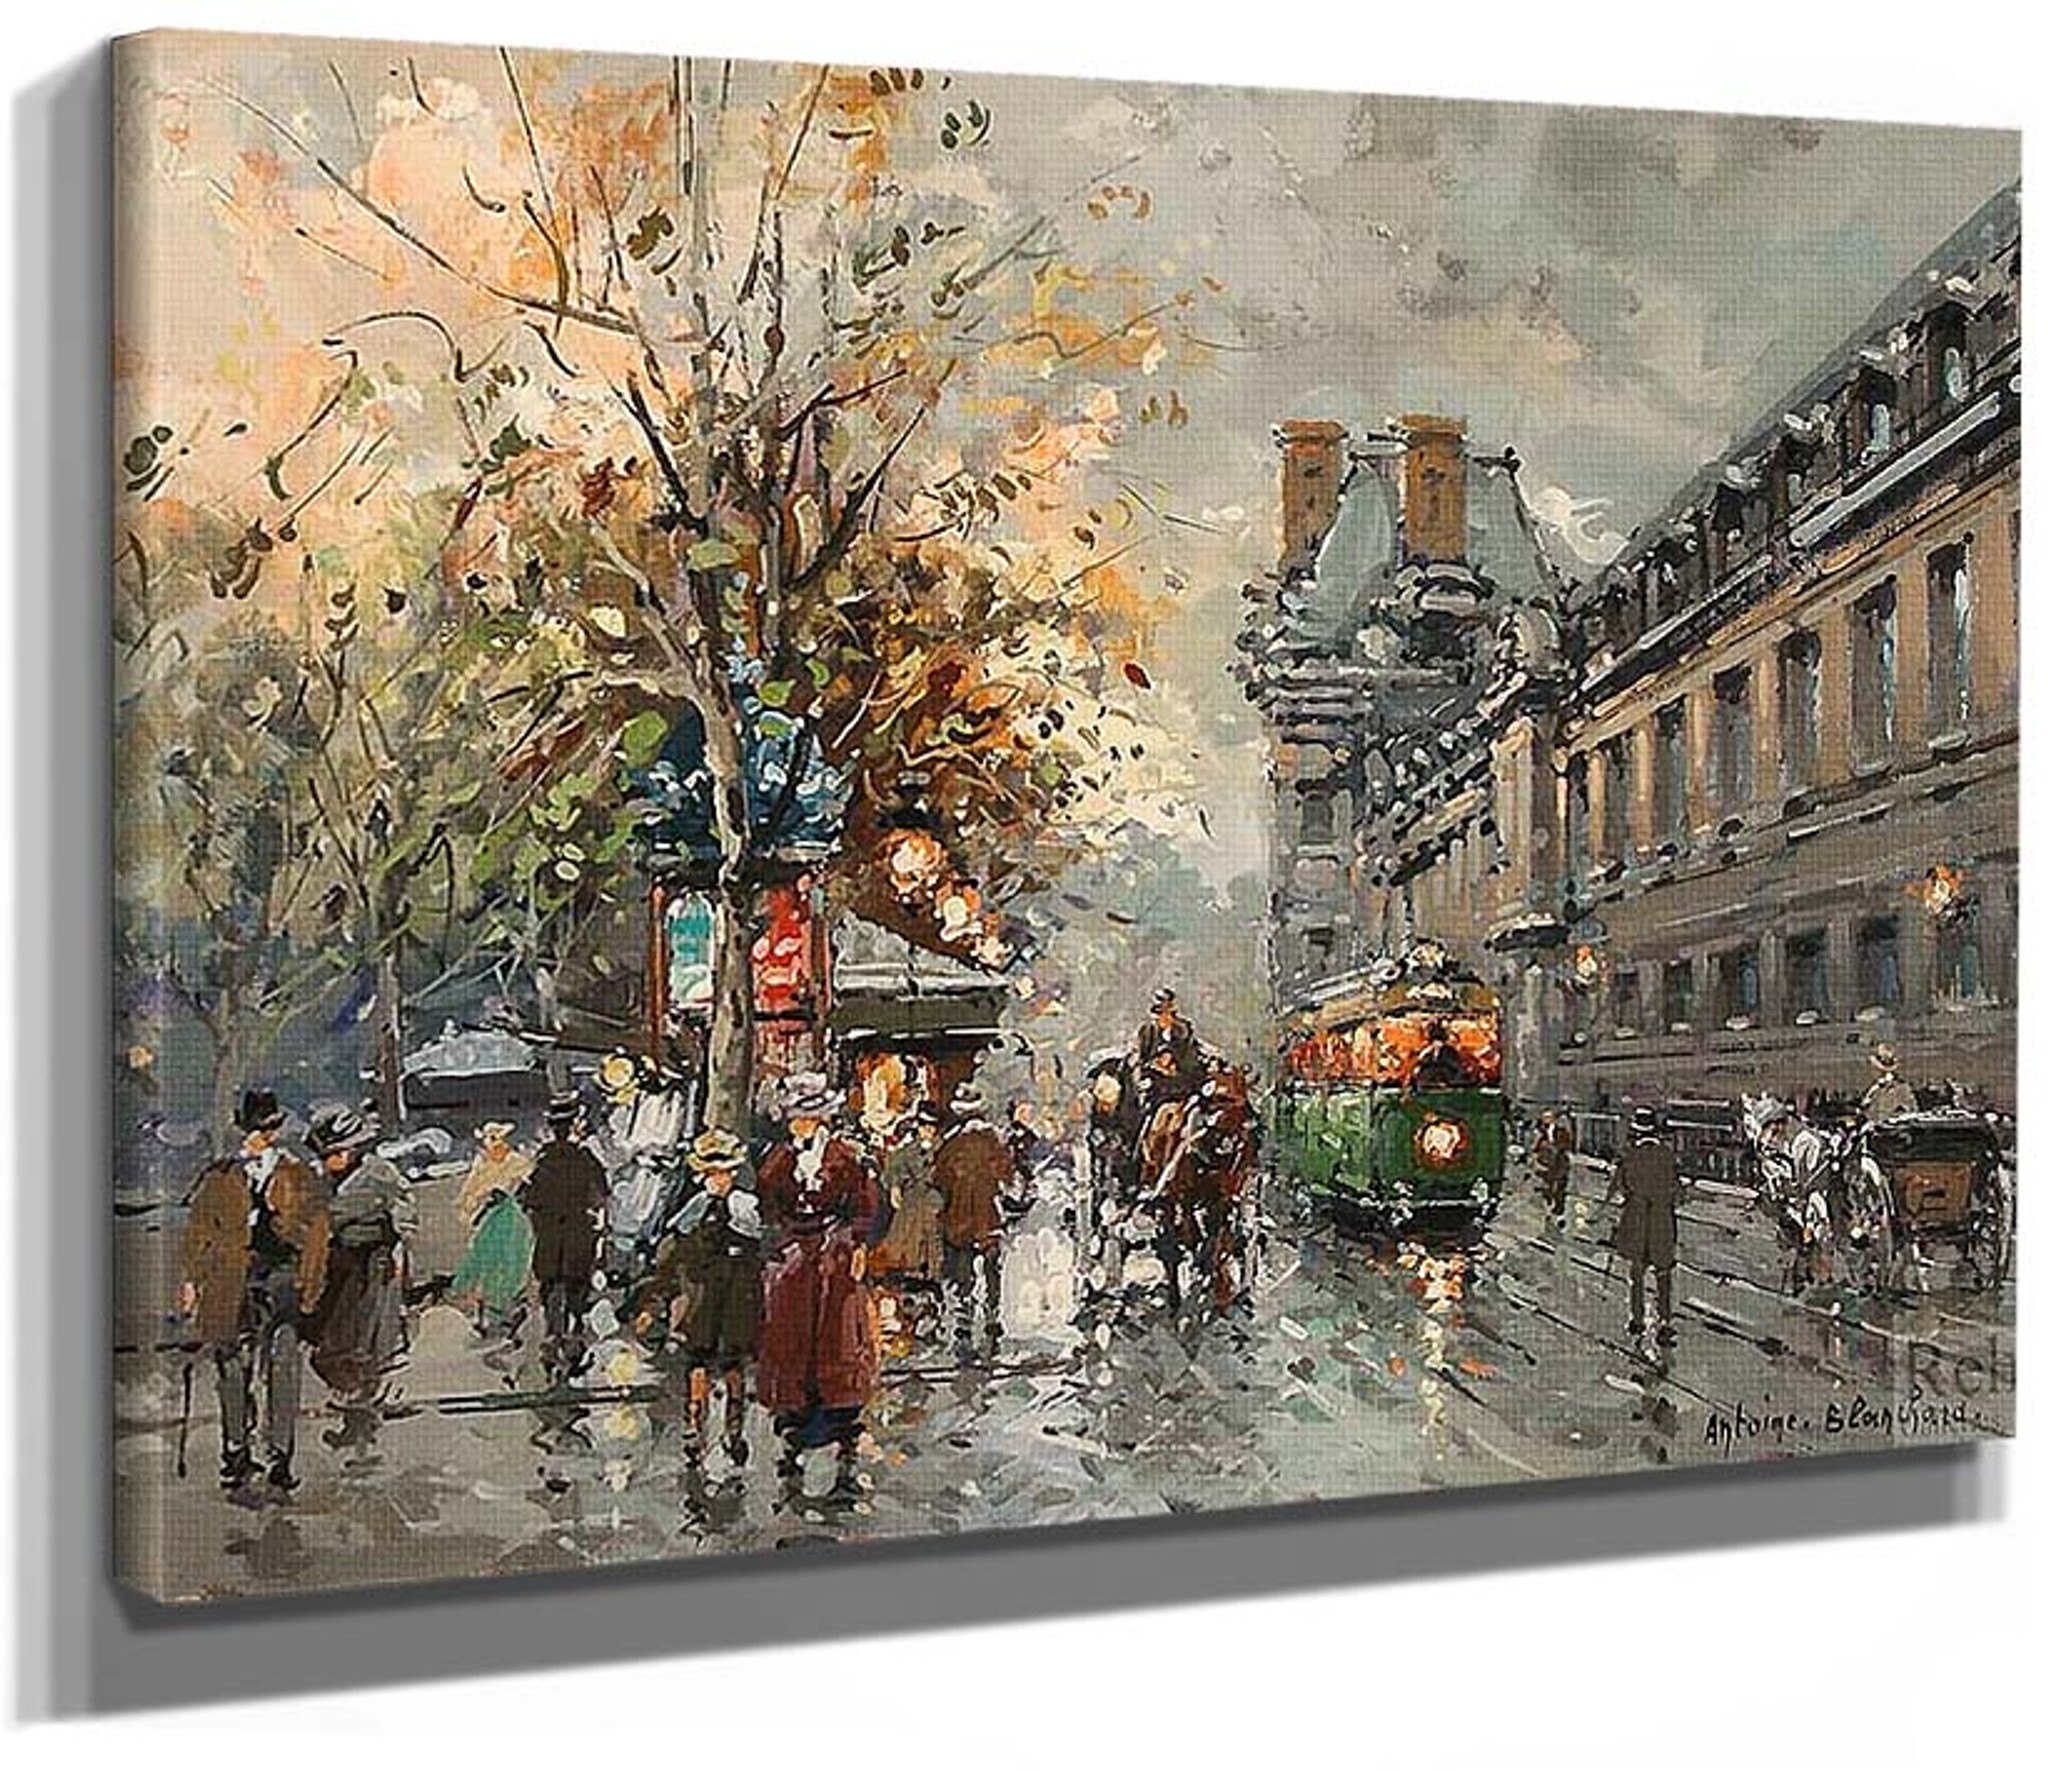 Porte St Denis 10 By Antoine Blanchard Art Reproduction From Wanford Download and print in pdf or midi free sheet music for strasbourg st denis by roy hargrove arranged by albert berglund for piano (solo). wanford